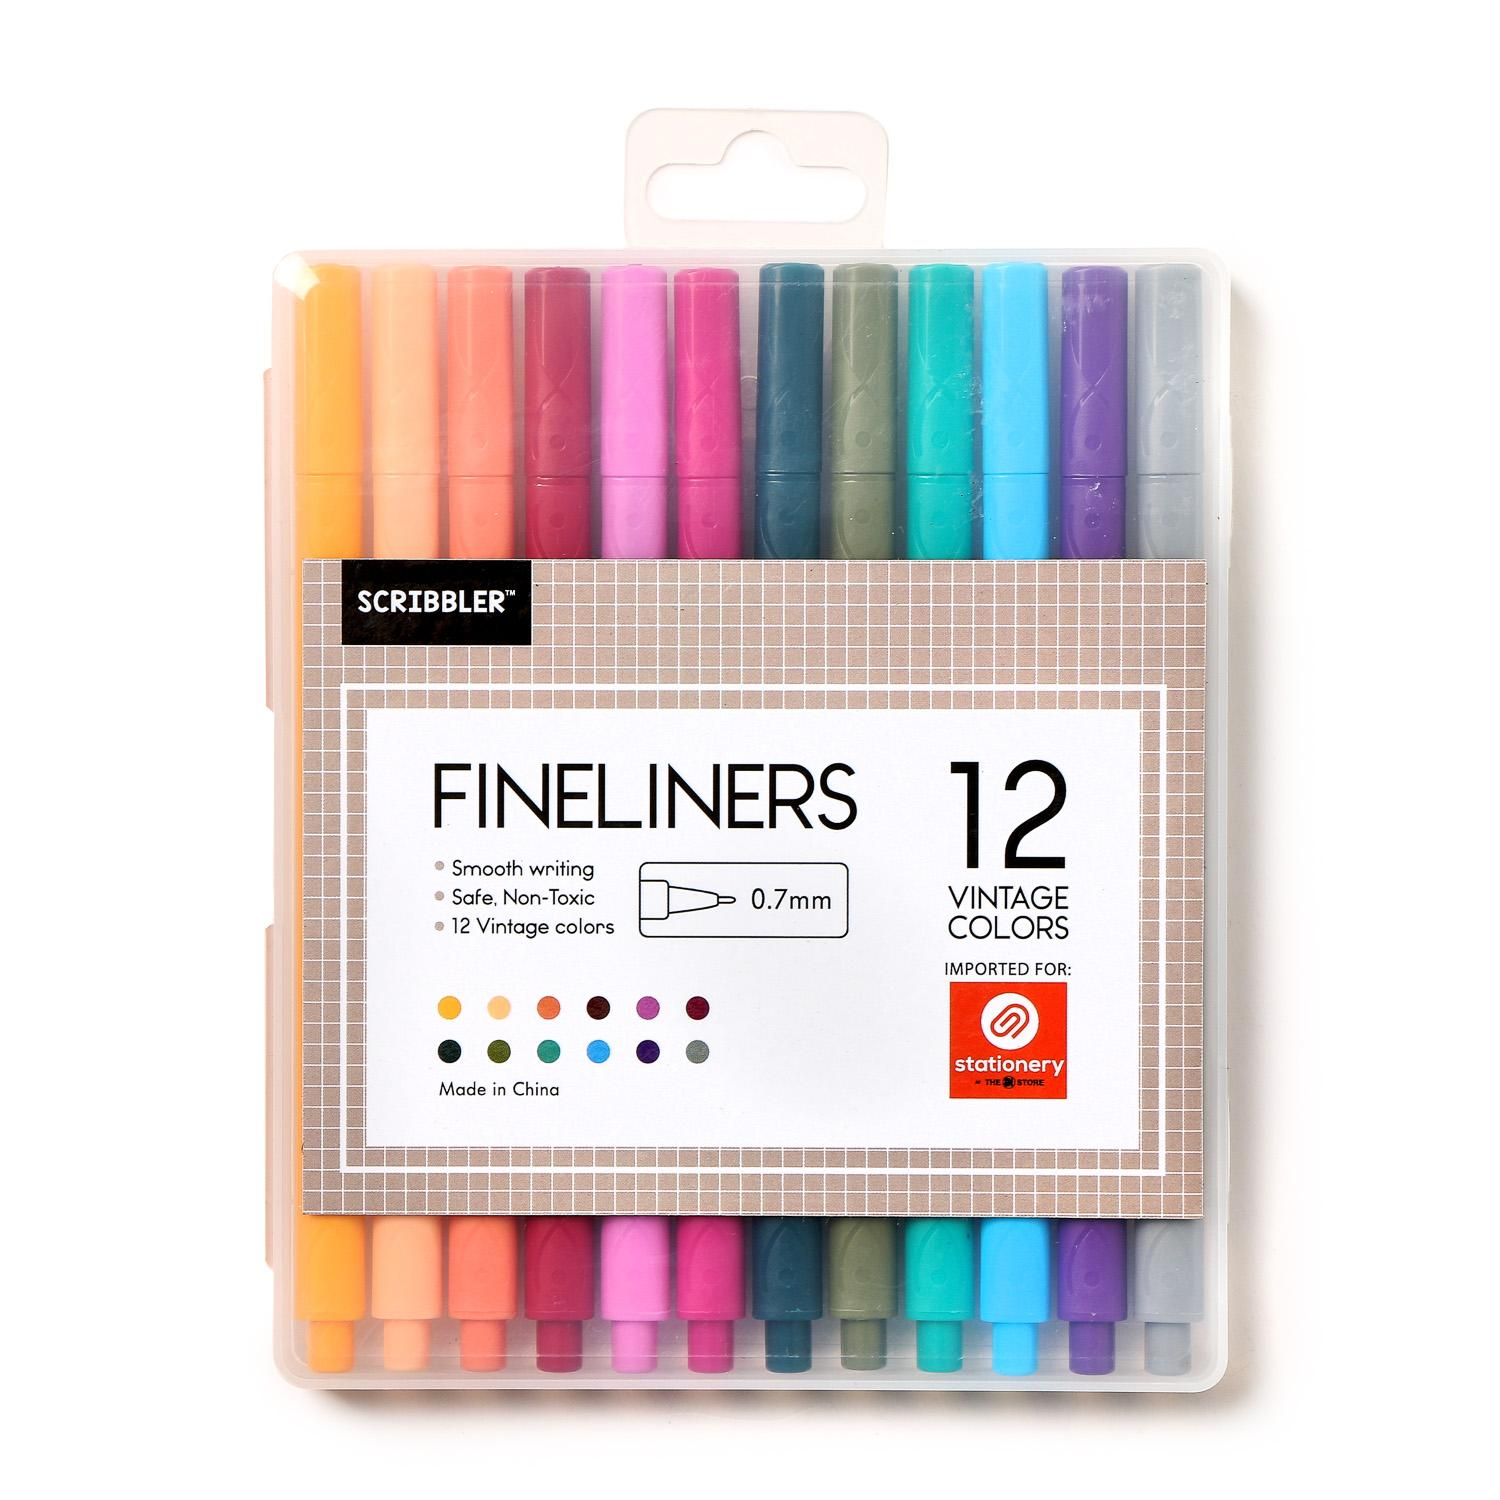 Scribbler .7mm Fineliners Of 12 Vintage Colors By The Sm Store.